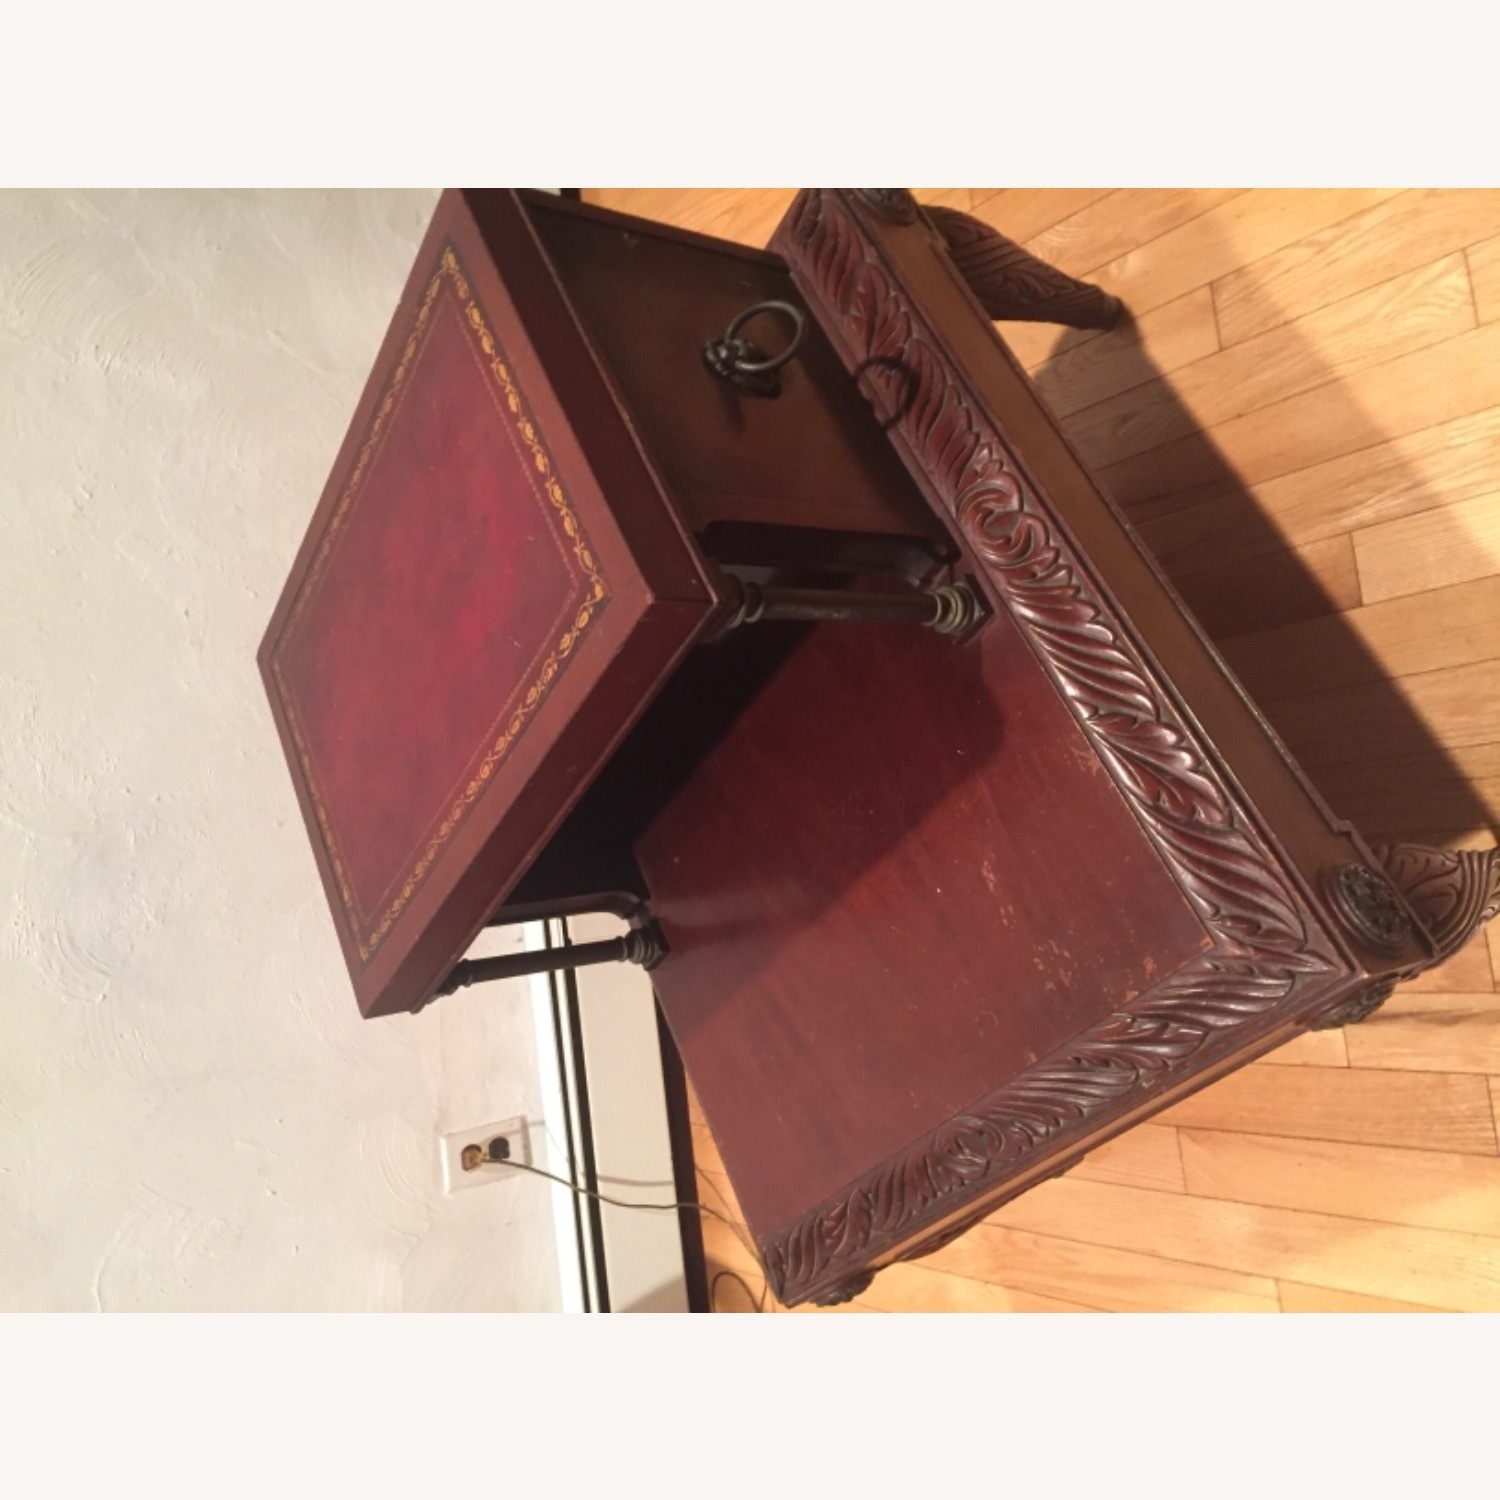 Antique Mahogany/Leather Side Table - image-2